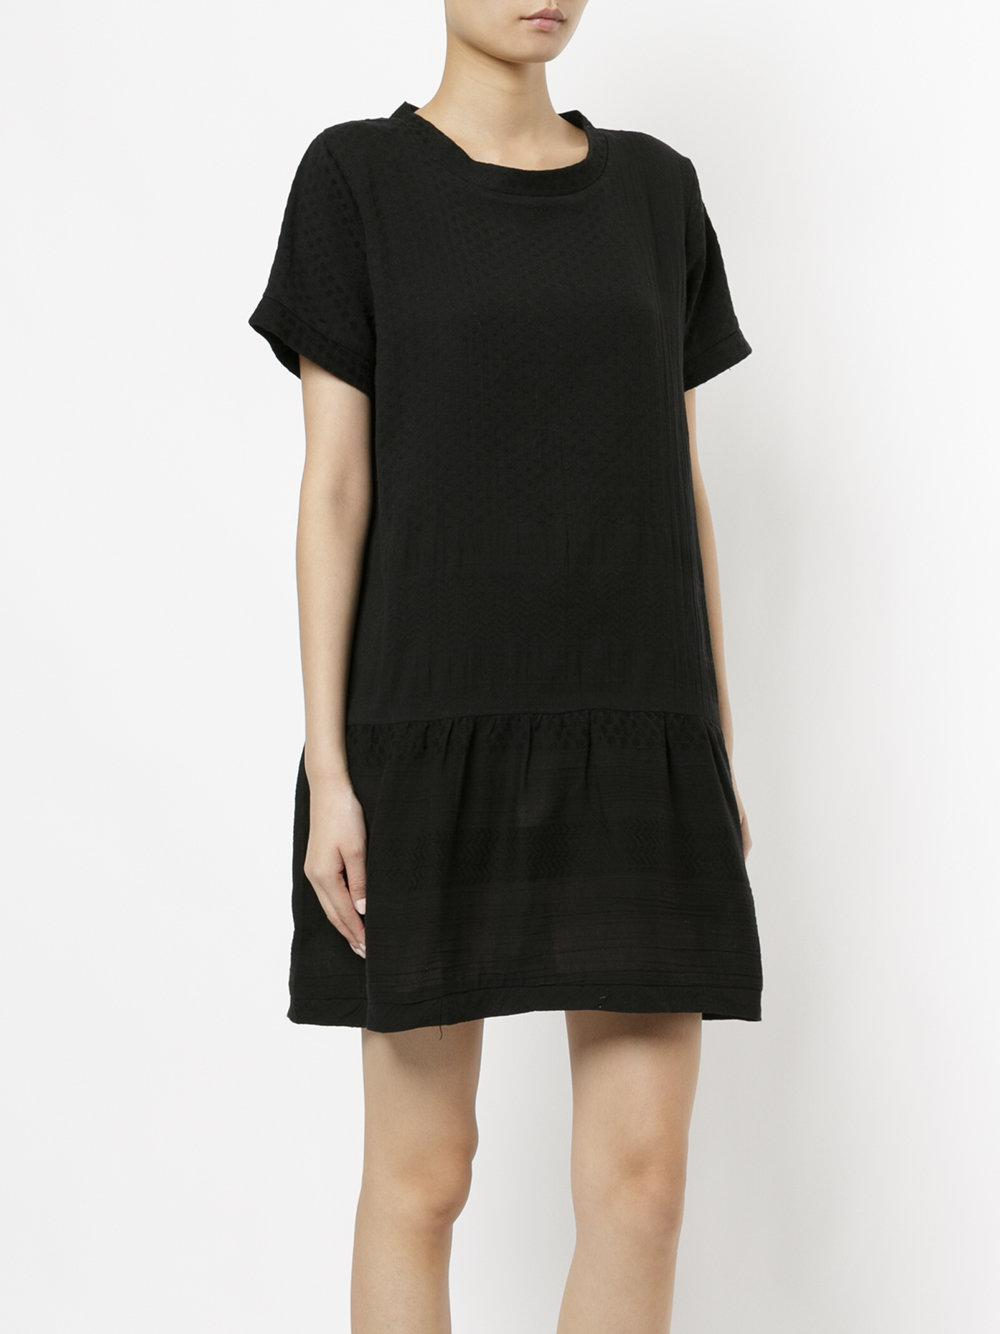 flared T-shirt dress - Black Cecilie Copenhagen Cheap Price Pre Order Cheap Looking For Find Great For Sale Discount With Mastercard viyEmL